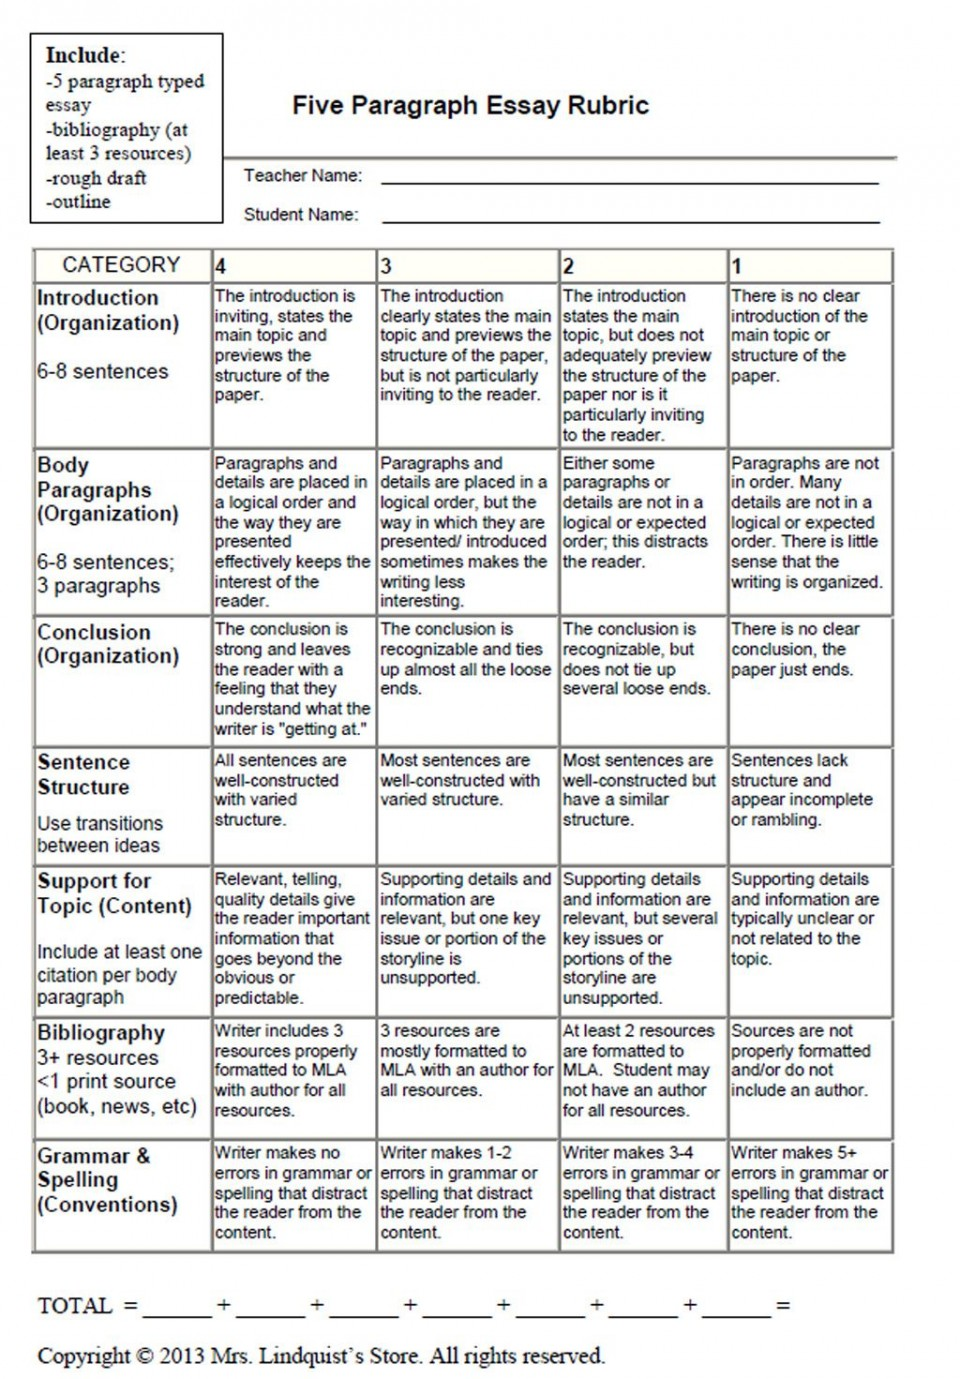 018 Essay Example Compare And Contrast Wondrous Rubric 3rd Grade High School 960